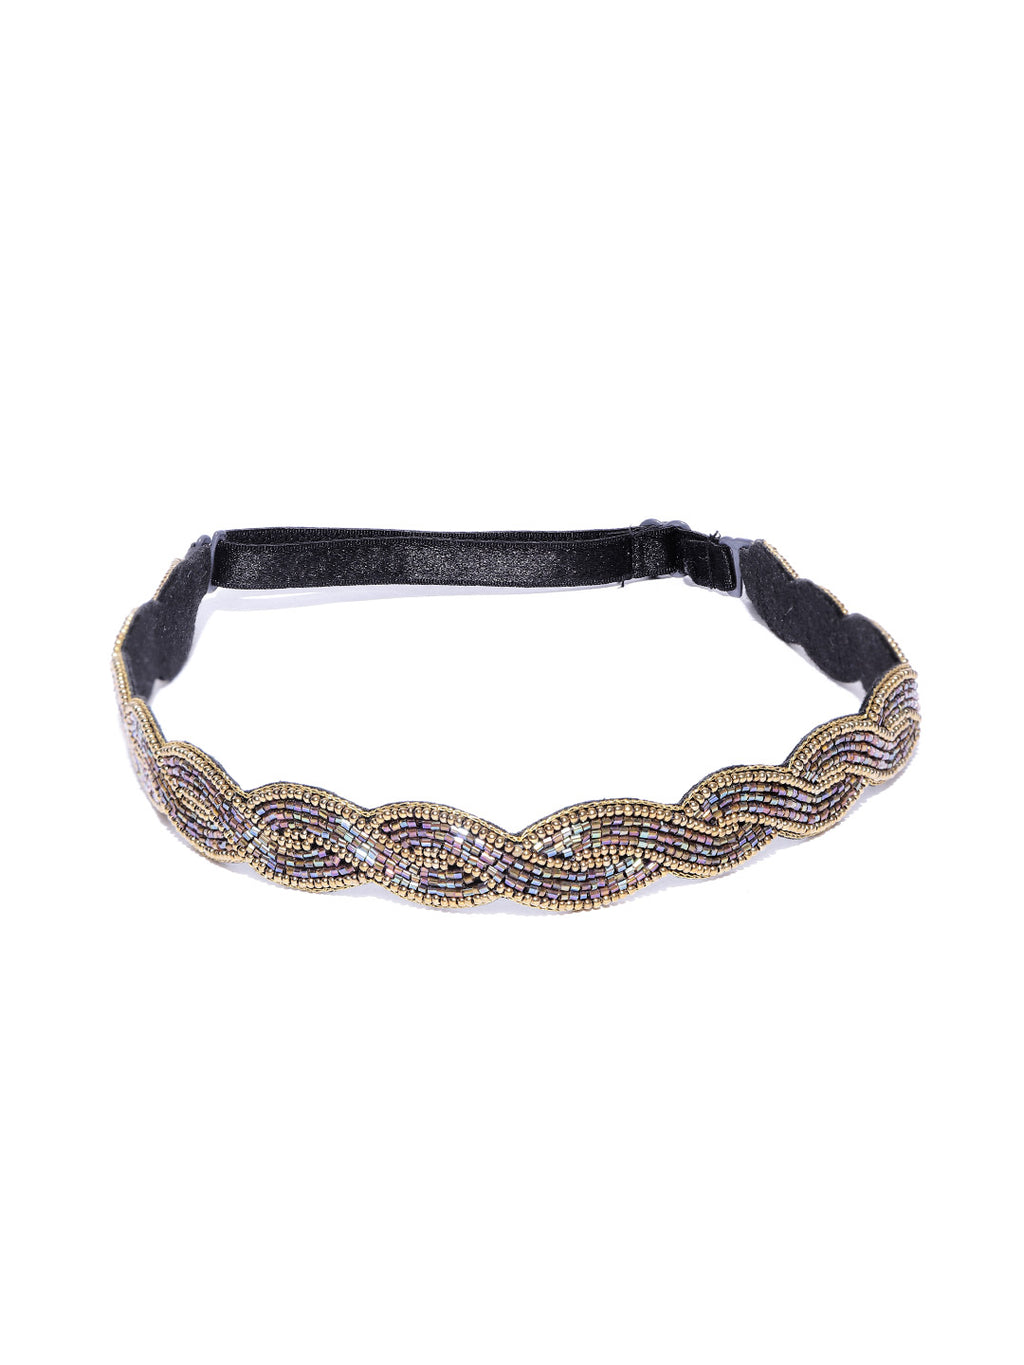 Blueberry multi glass bead embellished hair band